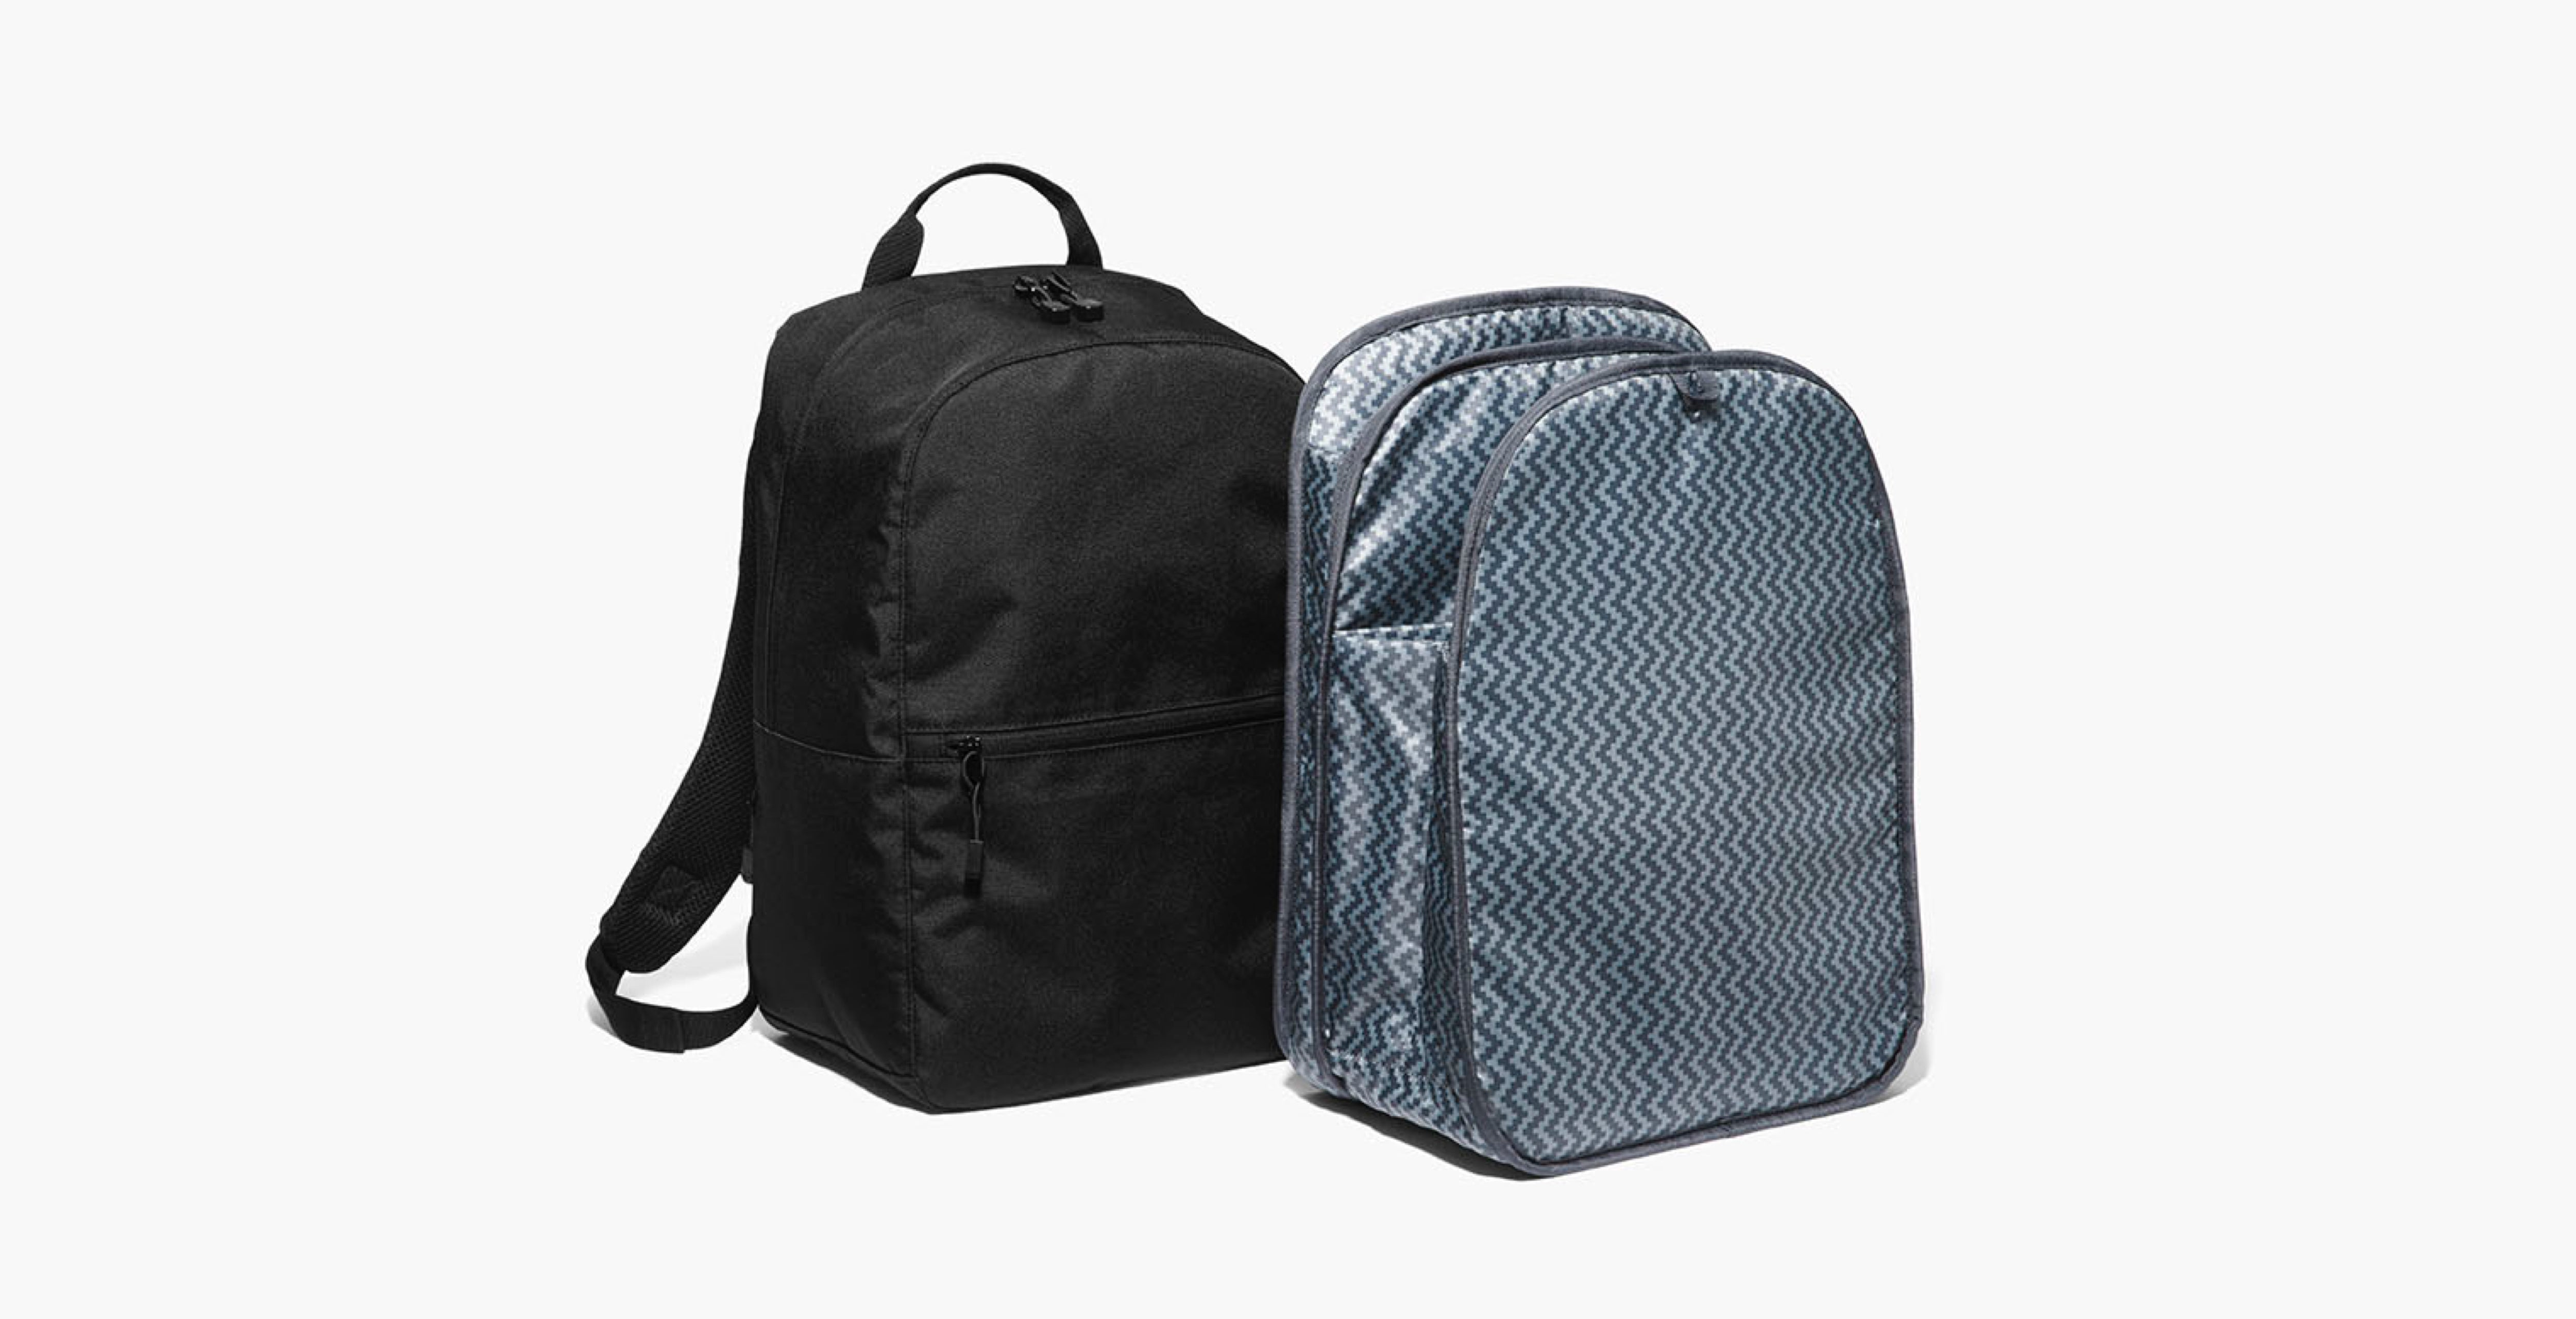 The Hanover Travel Backpack